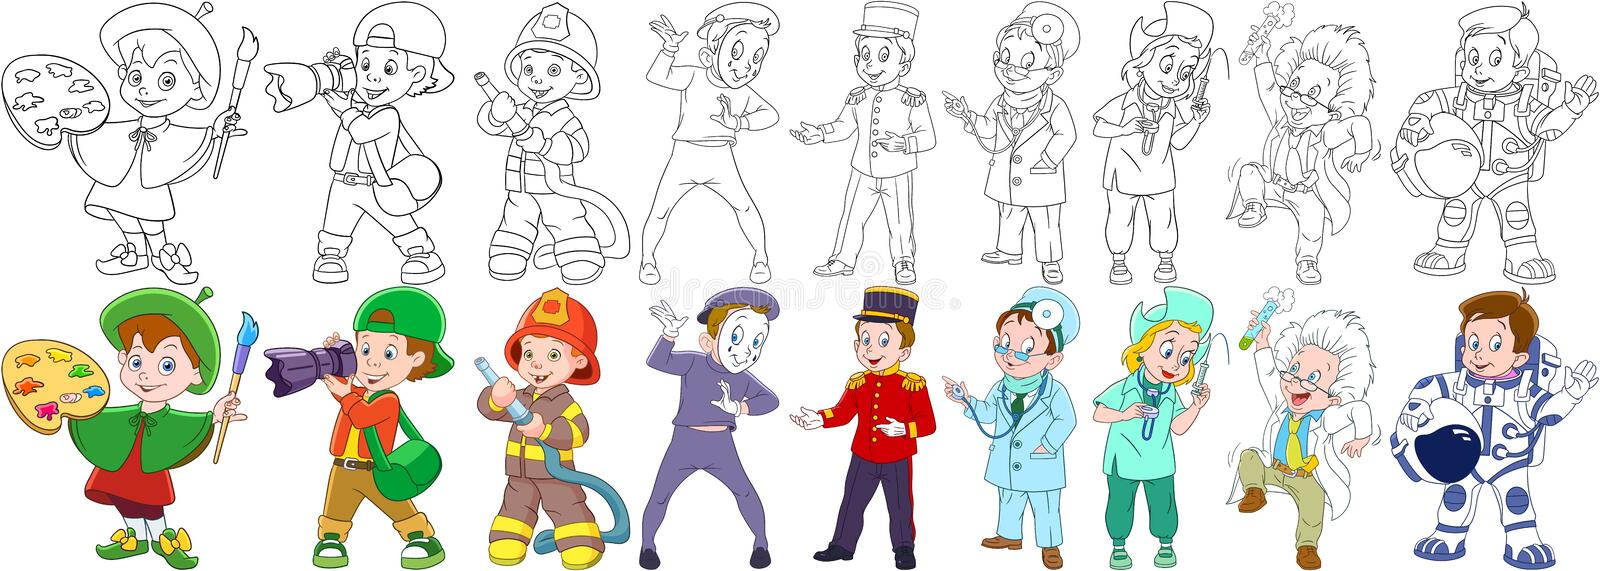 Cartoon professions set royalty free stock images